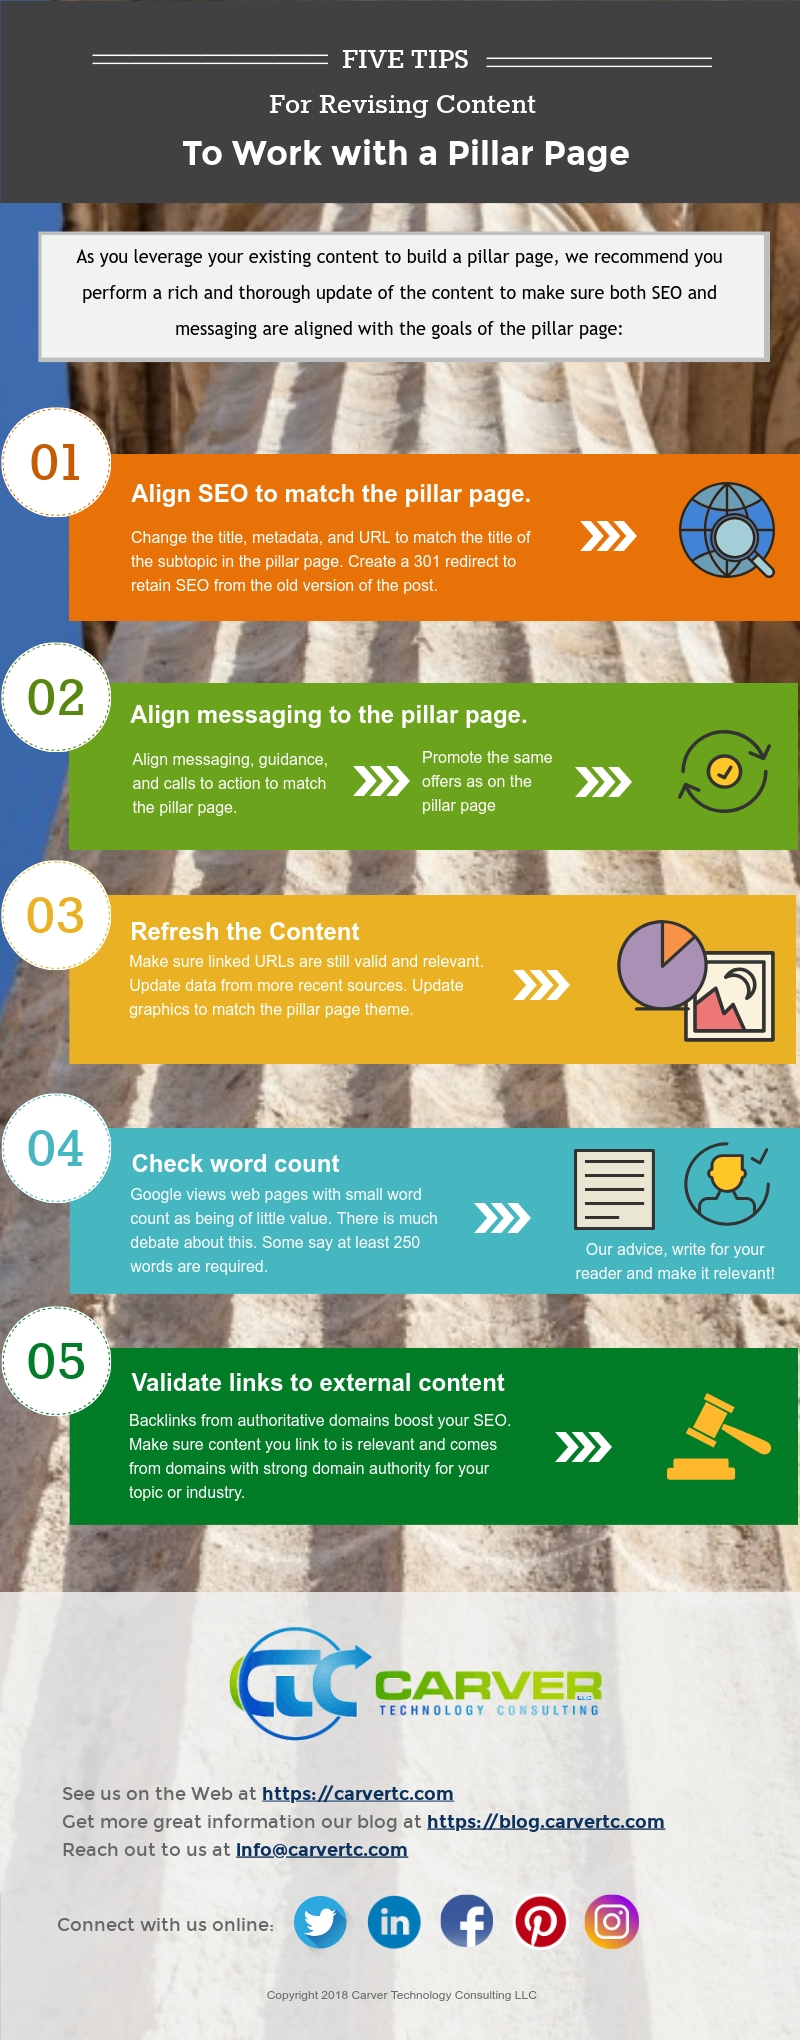 5 Tips for Revising Content to Work with a Pillar Page [Infographic]